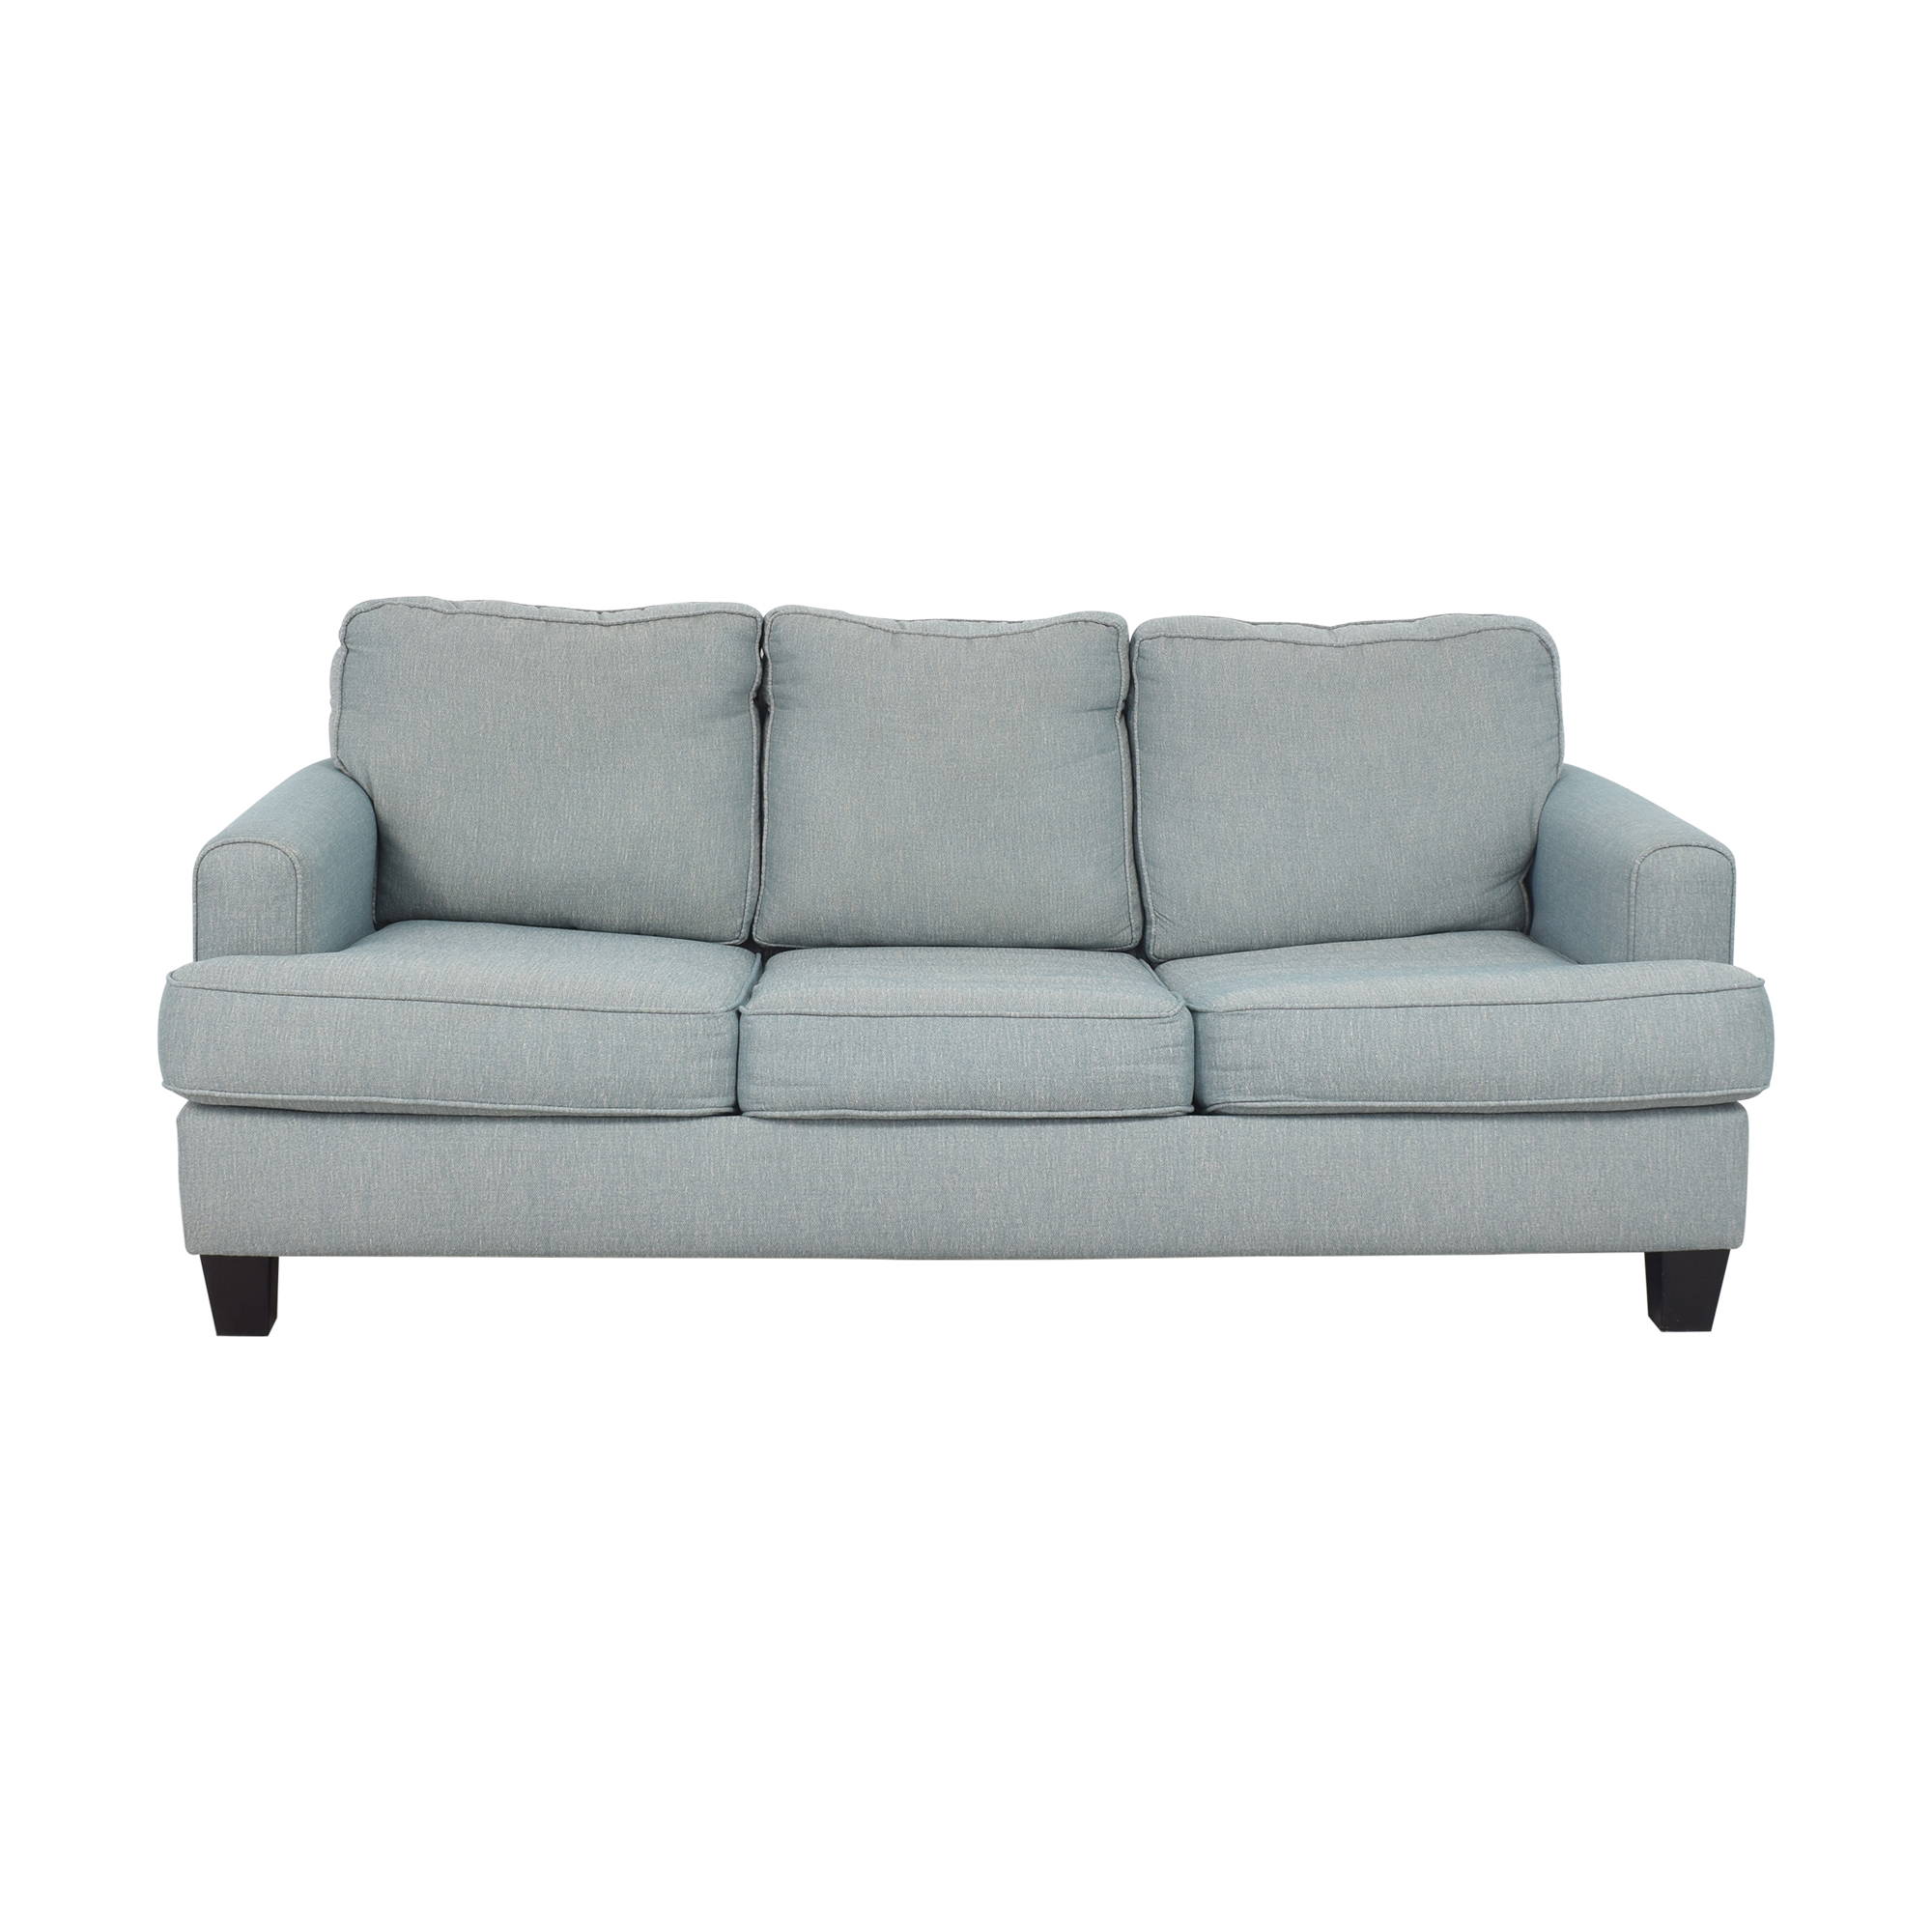 Raymour & Flanigan Raymour & Flanigan Sleeper Sofa coupon